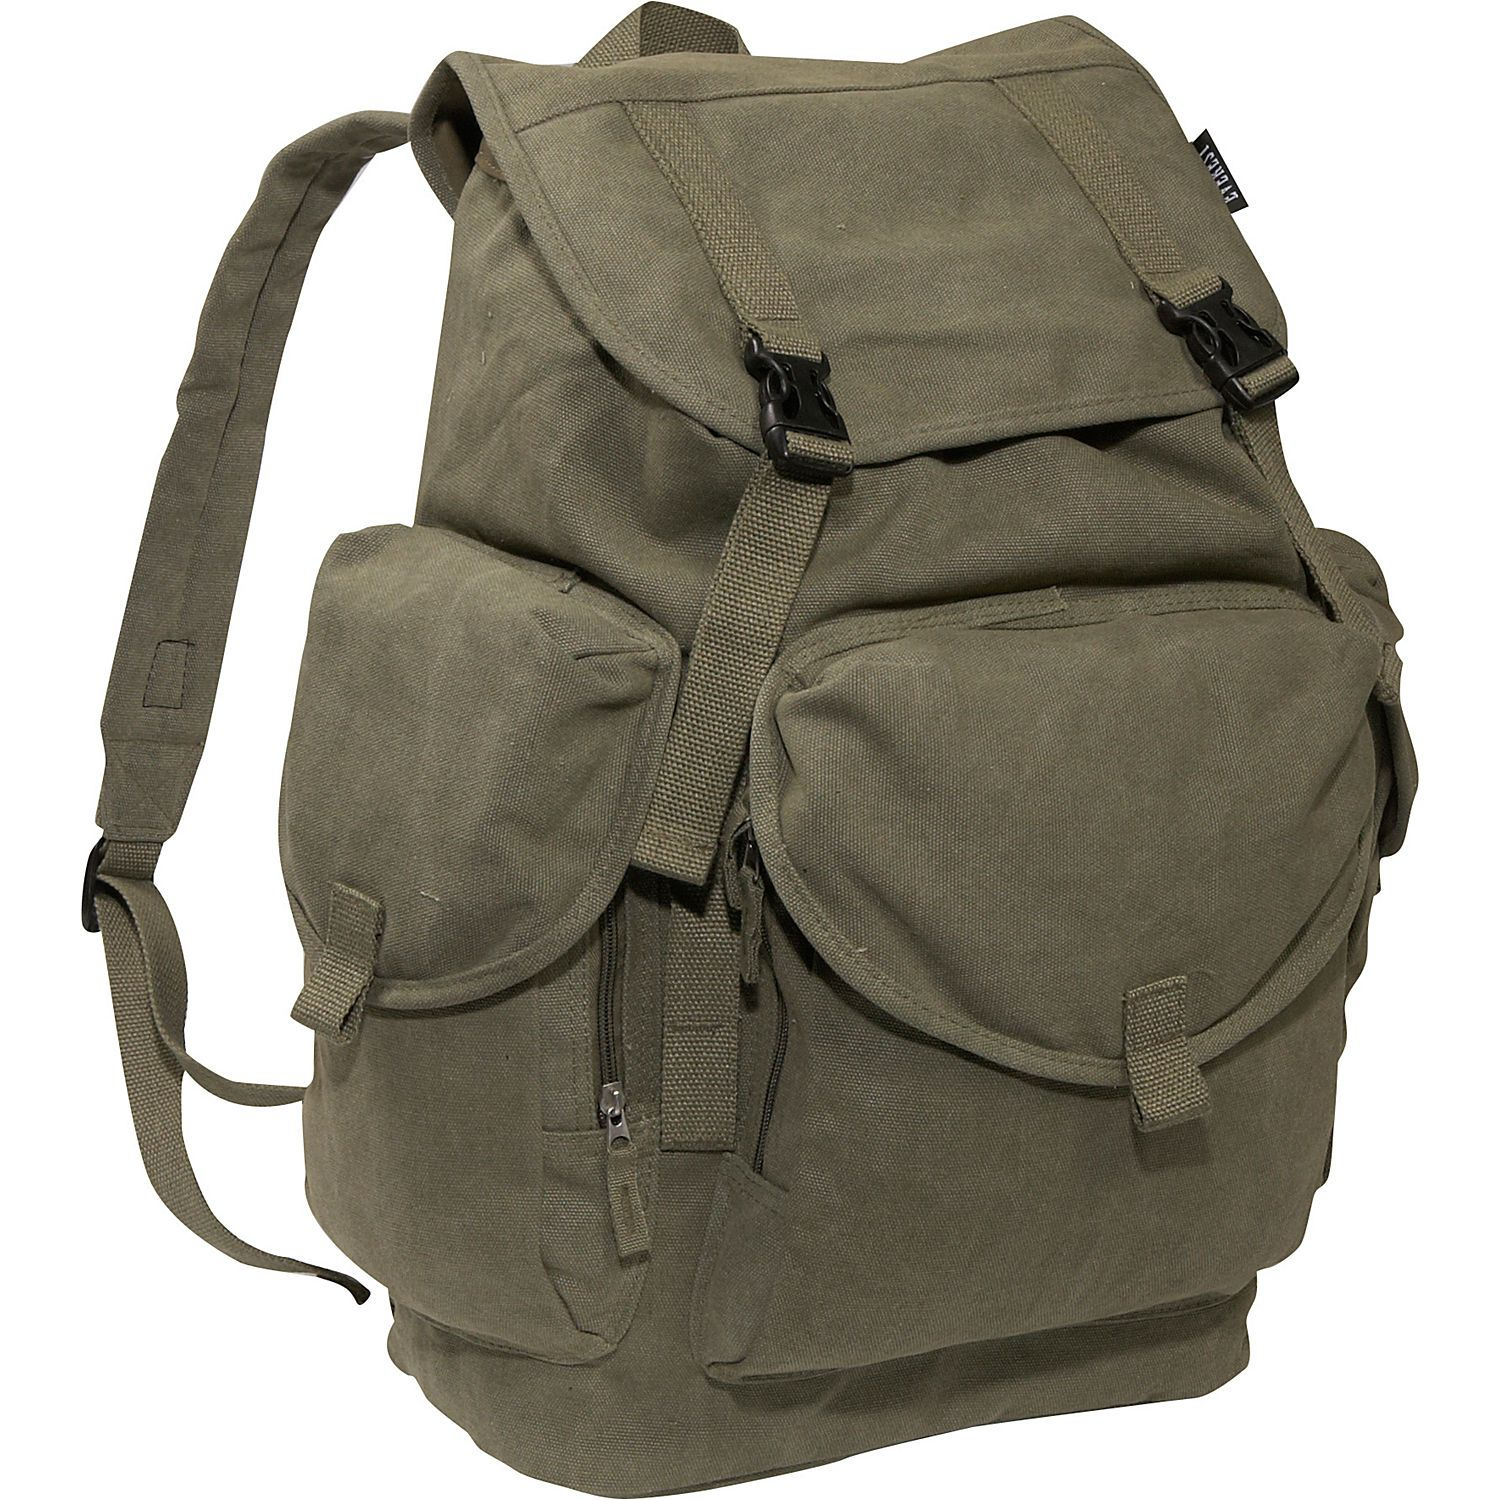 Buy the Everest Large Cotton Canvas Backpack at eBags - experts in bags and  accessories since 1999. We offer easy returns 8c40e1ca05421